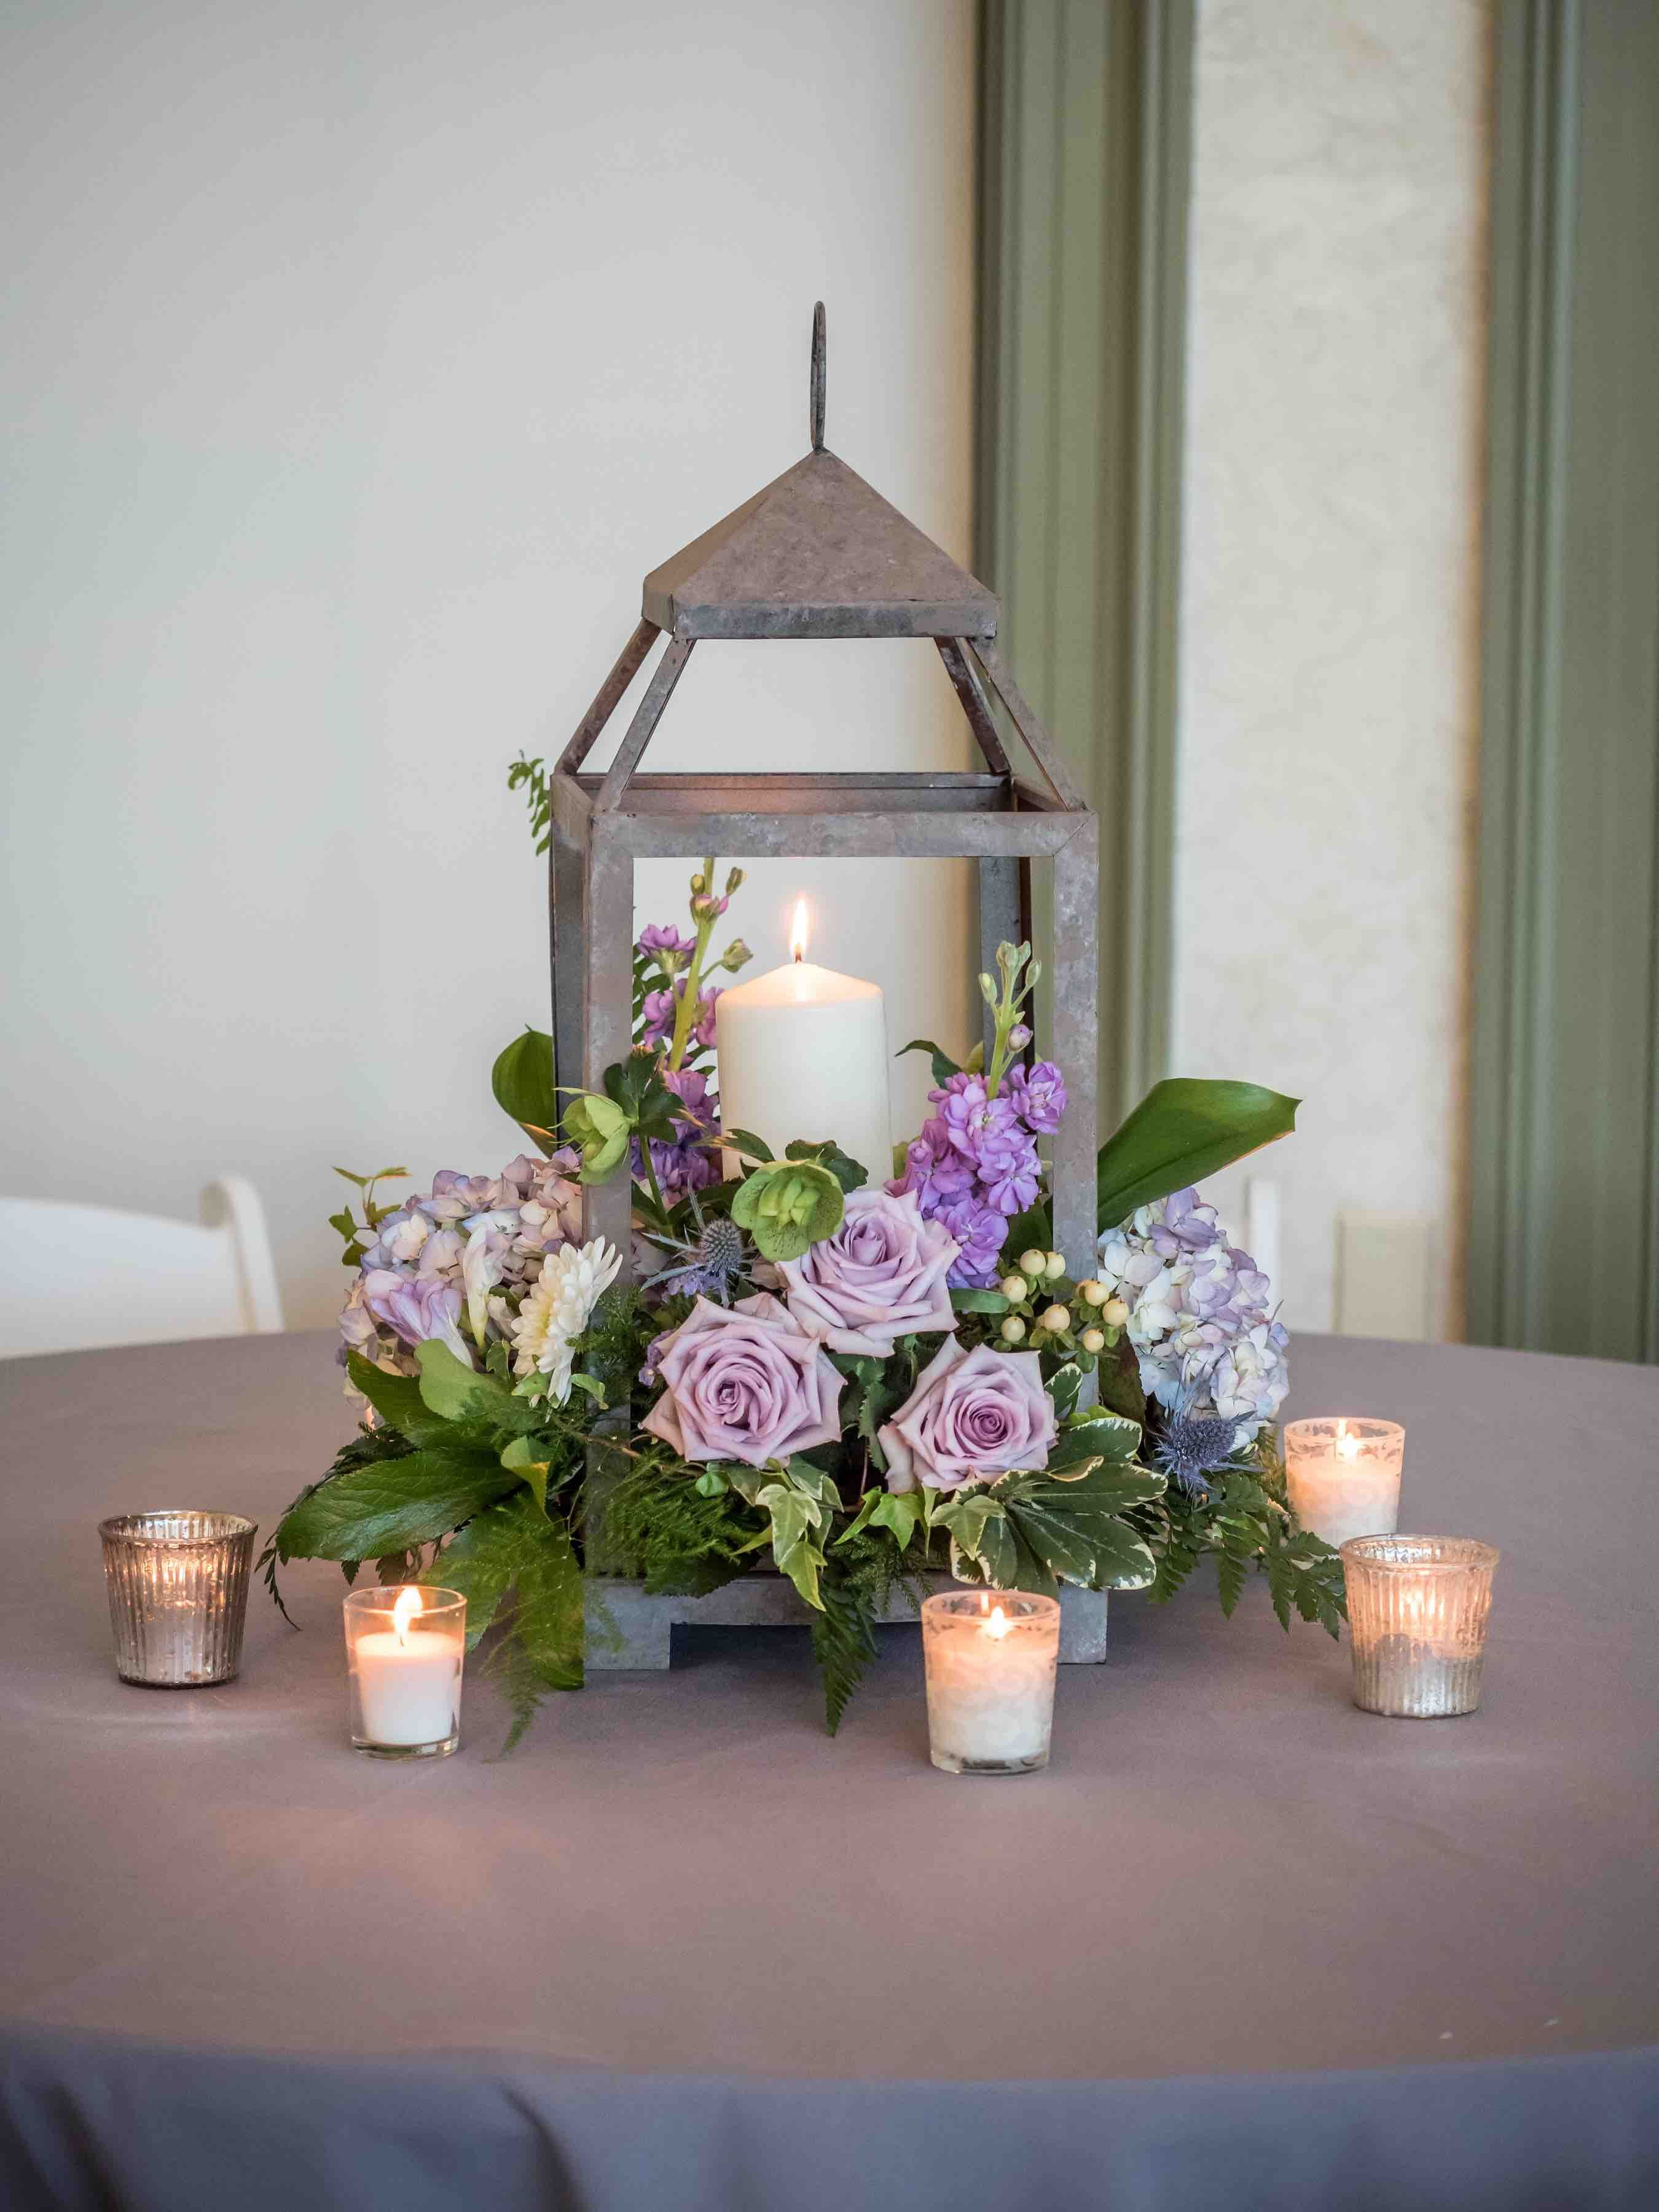 Simple and elegant rustic center piece using a wooden